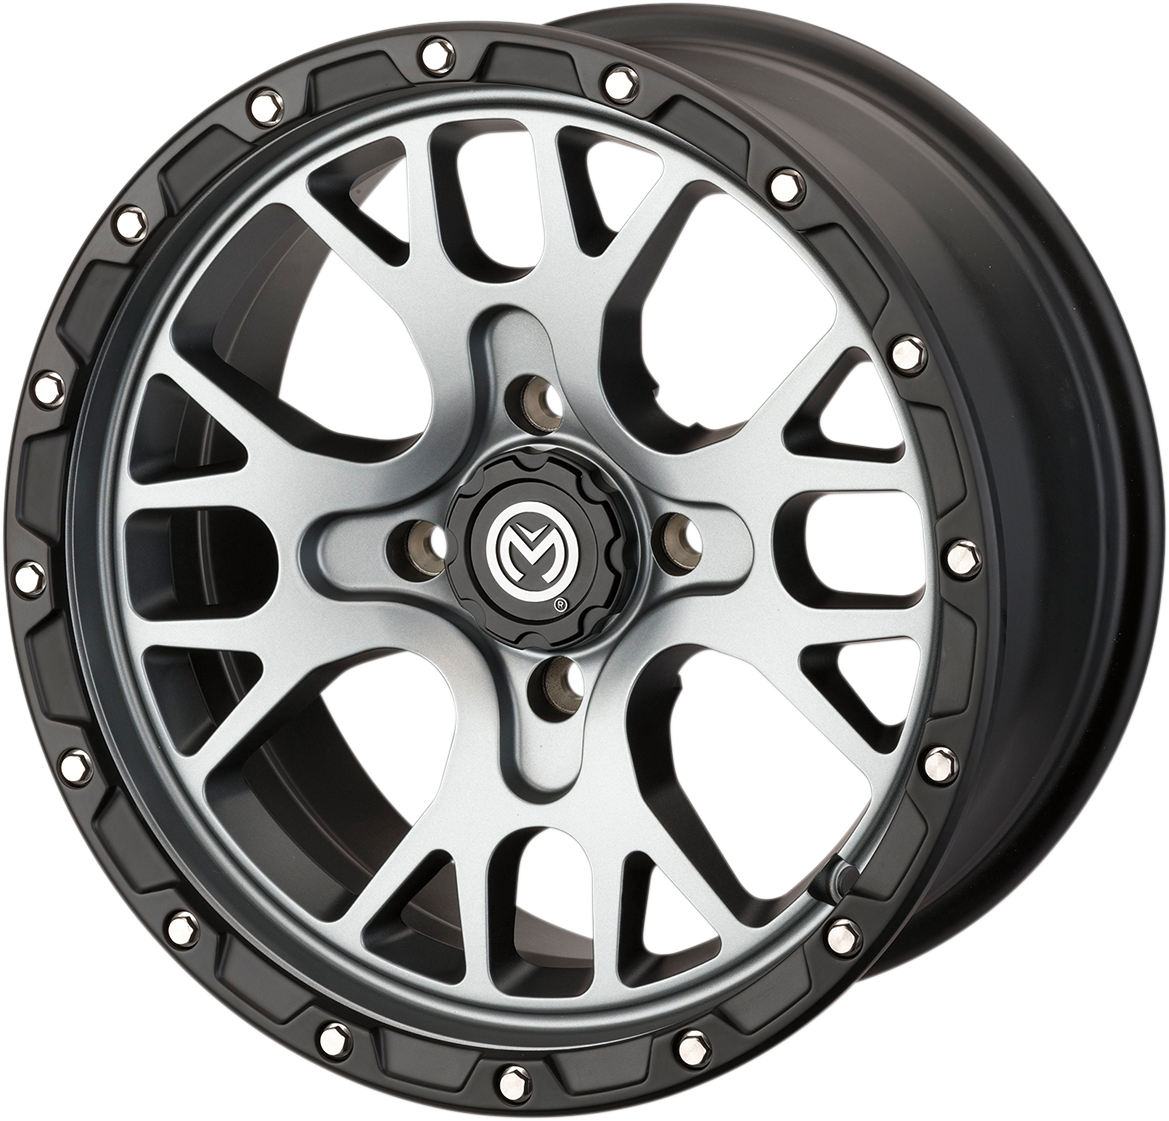 Moose 14x7 4/136 5+2 545X Satin Gray & Black Rocker vannesarja Can-Am